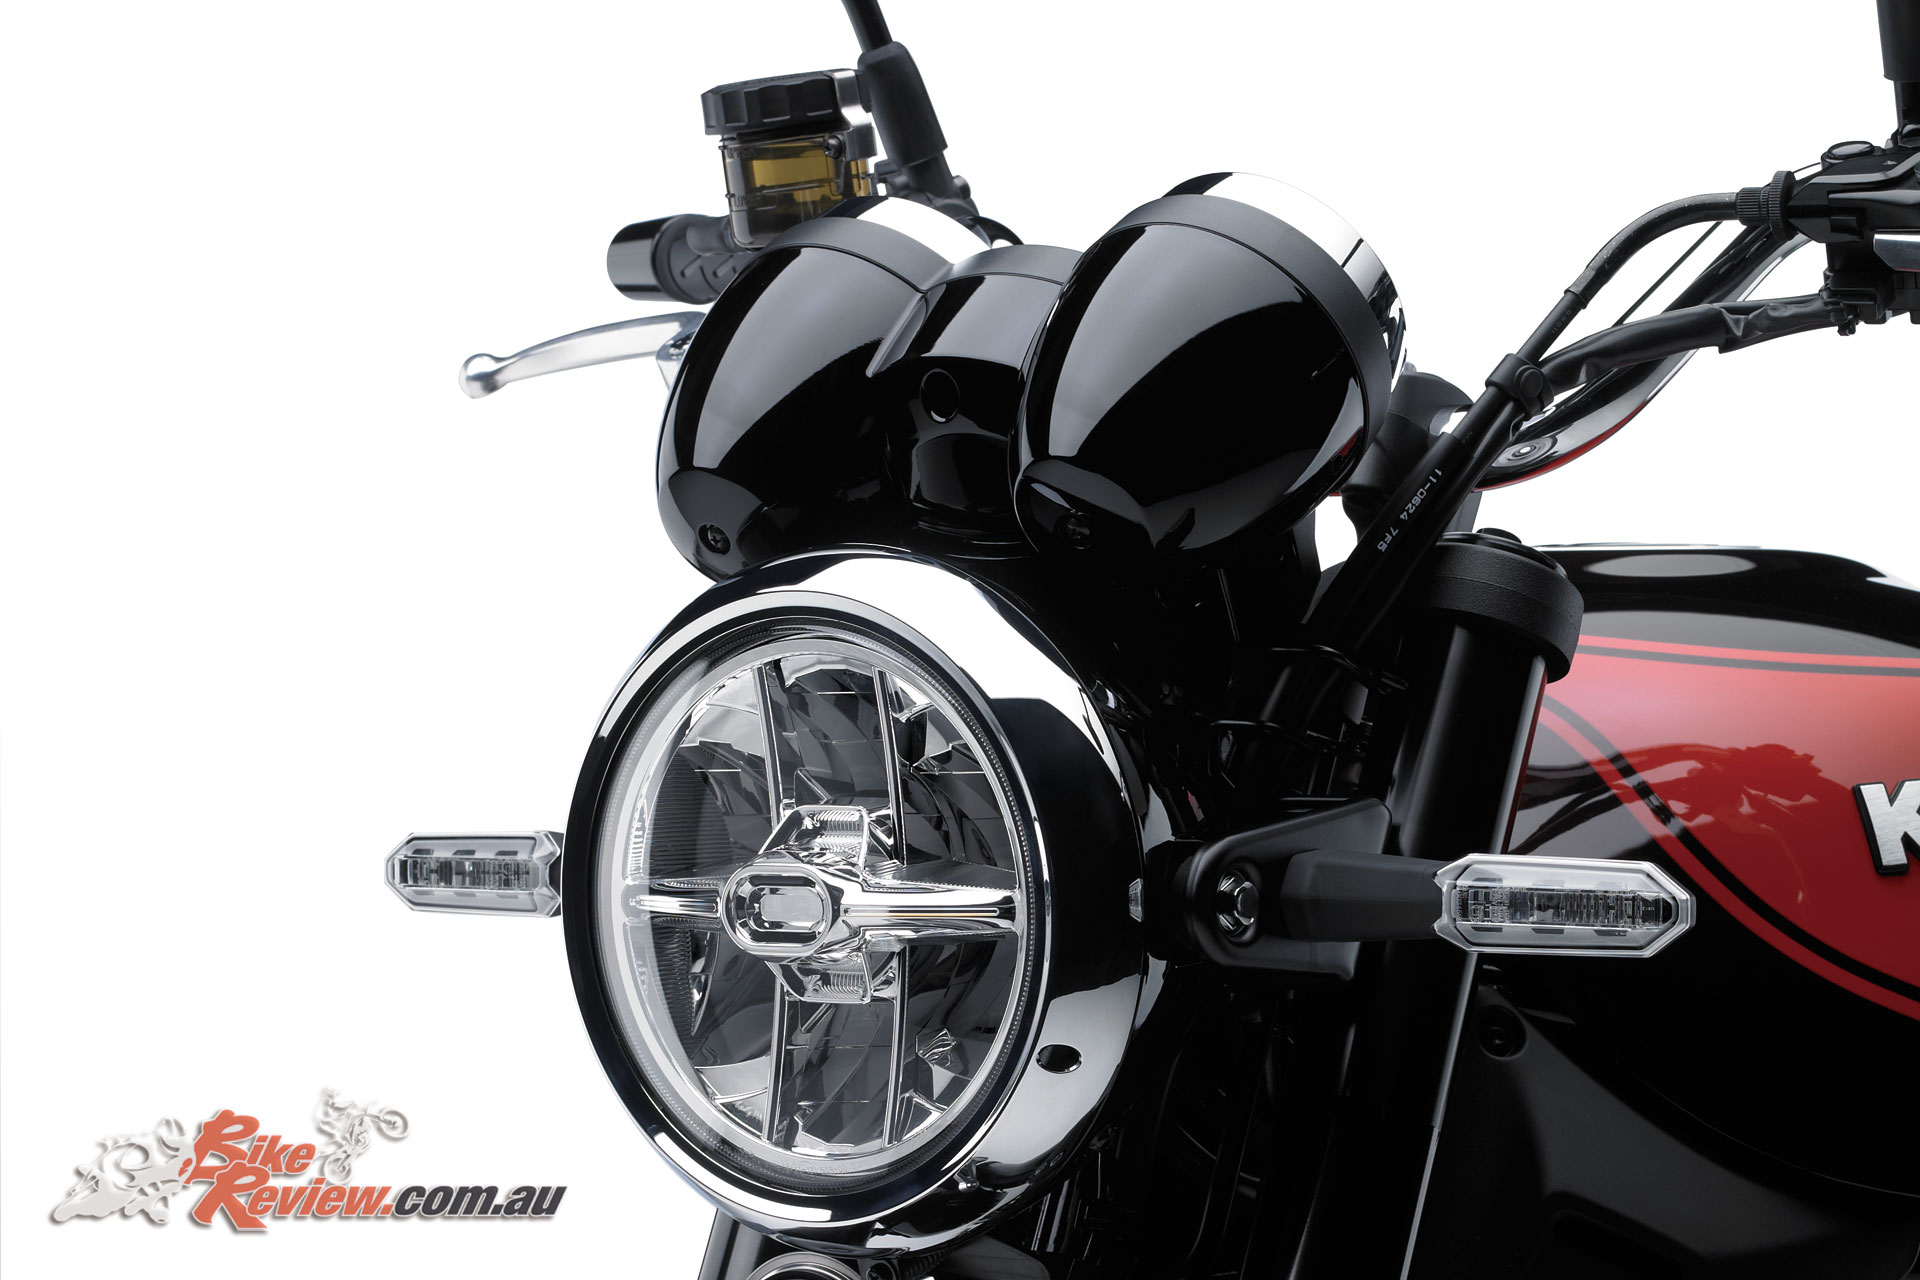 A 170mm front LED headlight is also featured